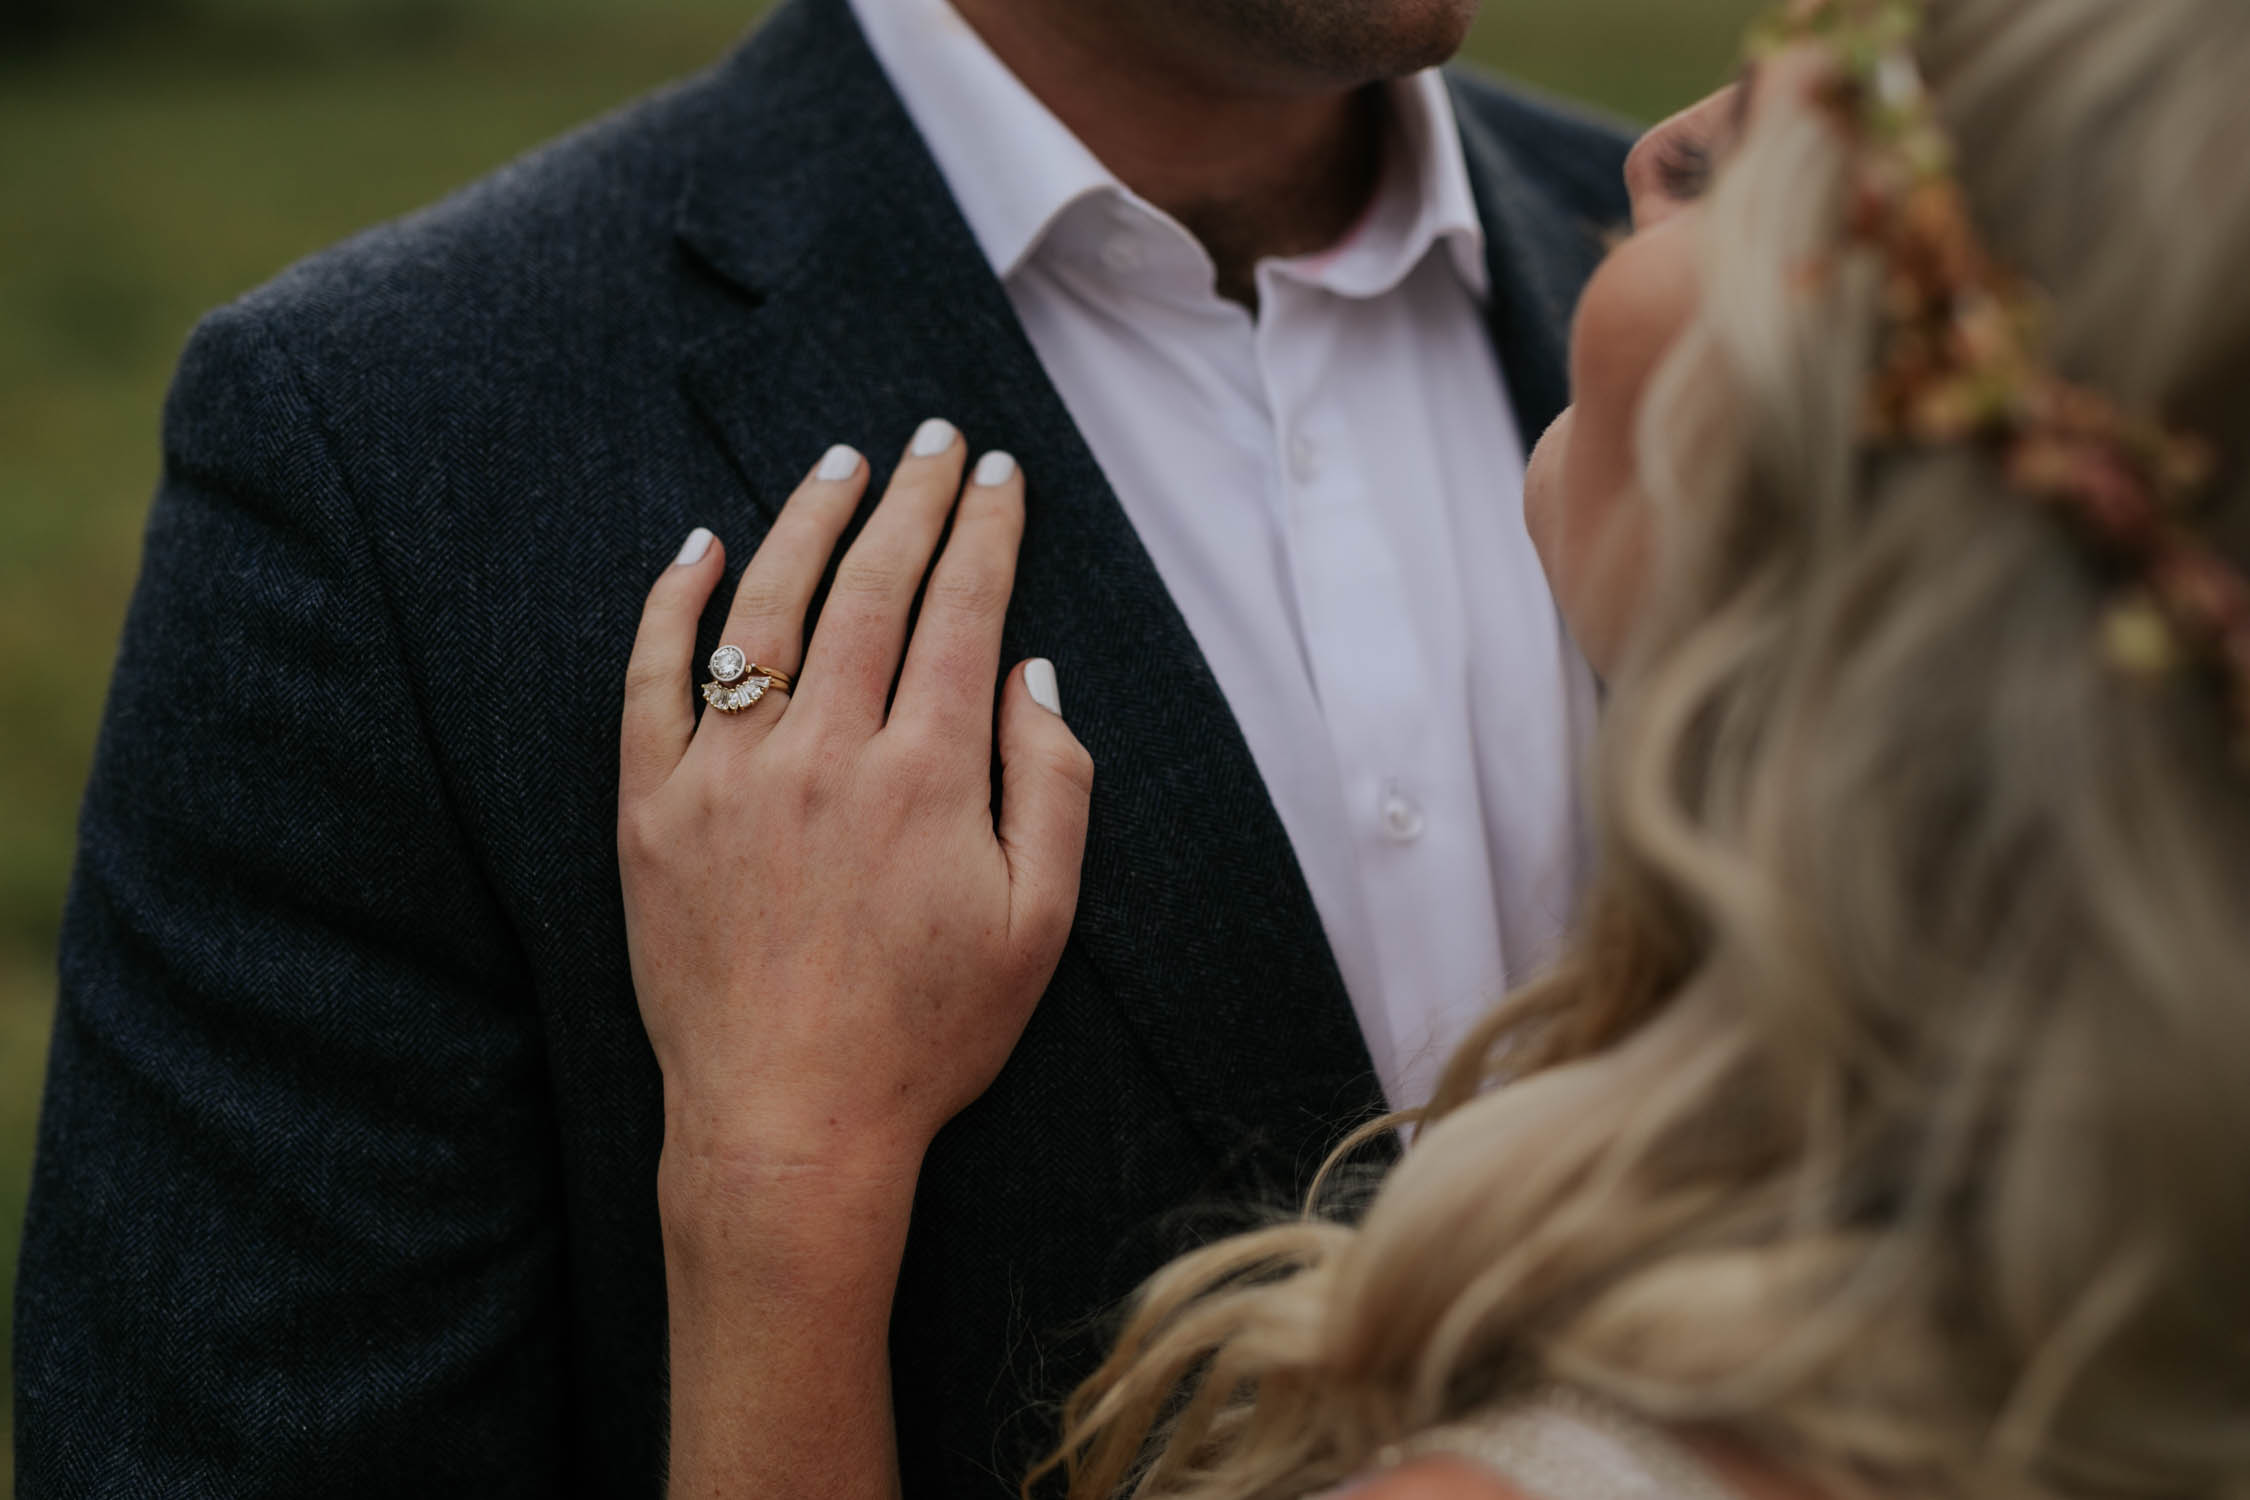 Great way to photograph bride's details like her wedding ring naturally.